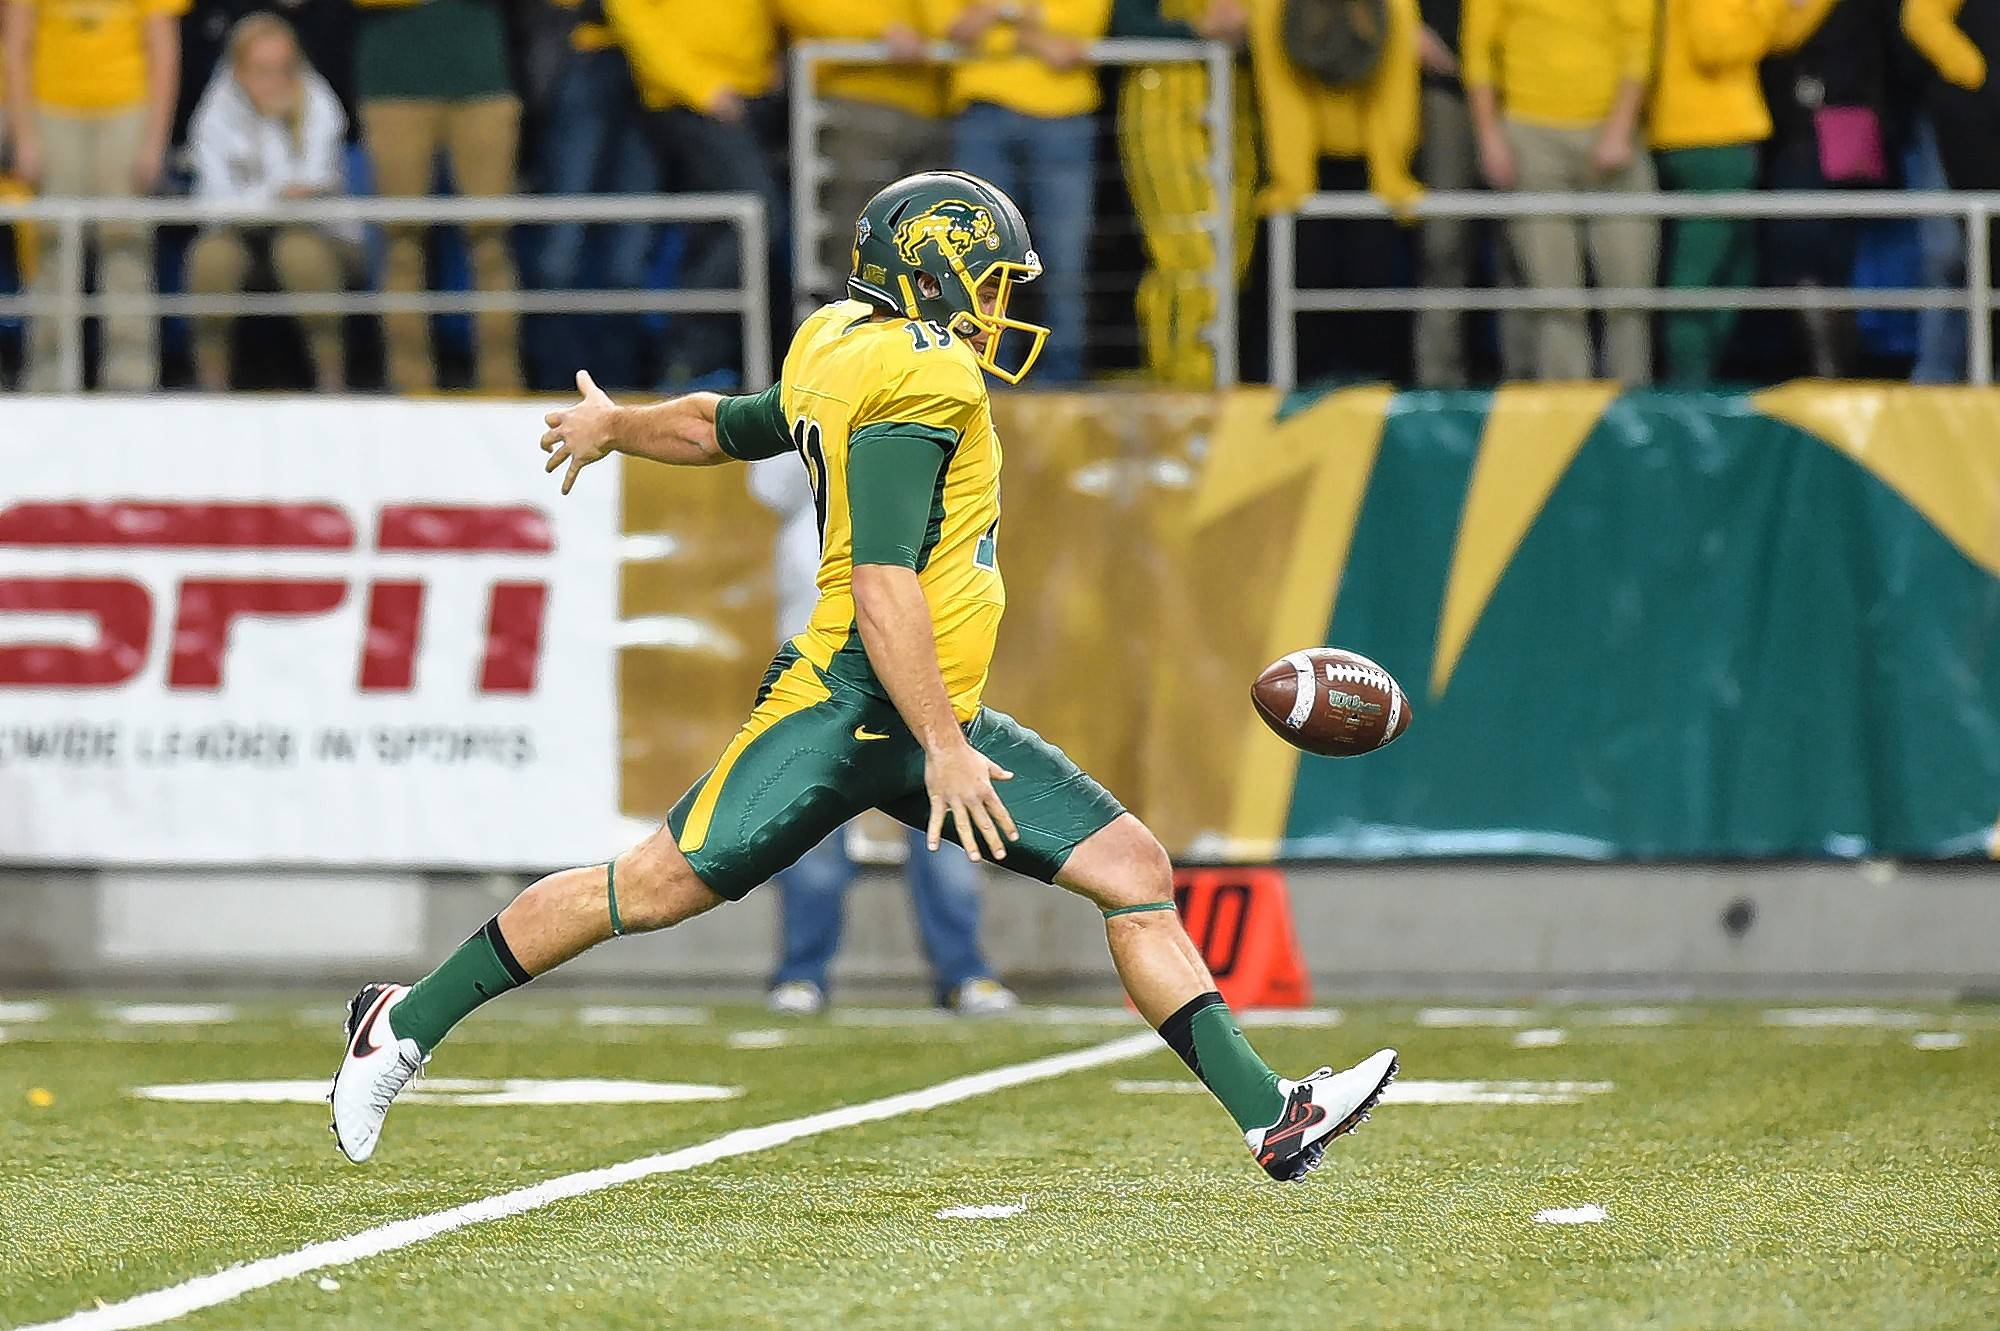 Courtesy of North Dakota StateBarrington product Ben LeCompte has developed into one of the nation's best punters at North Dakota State.